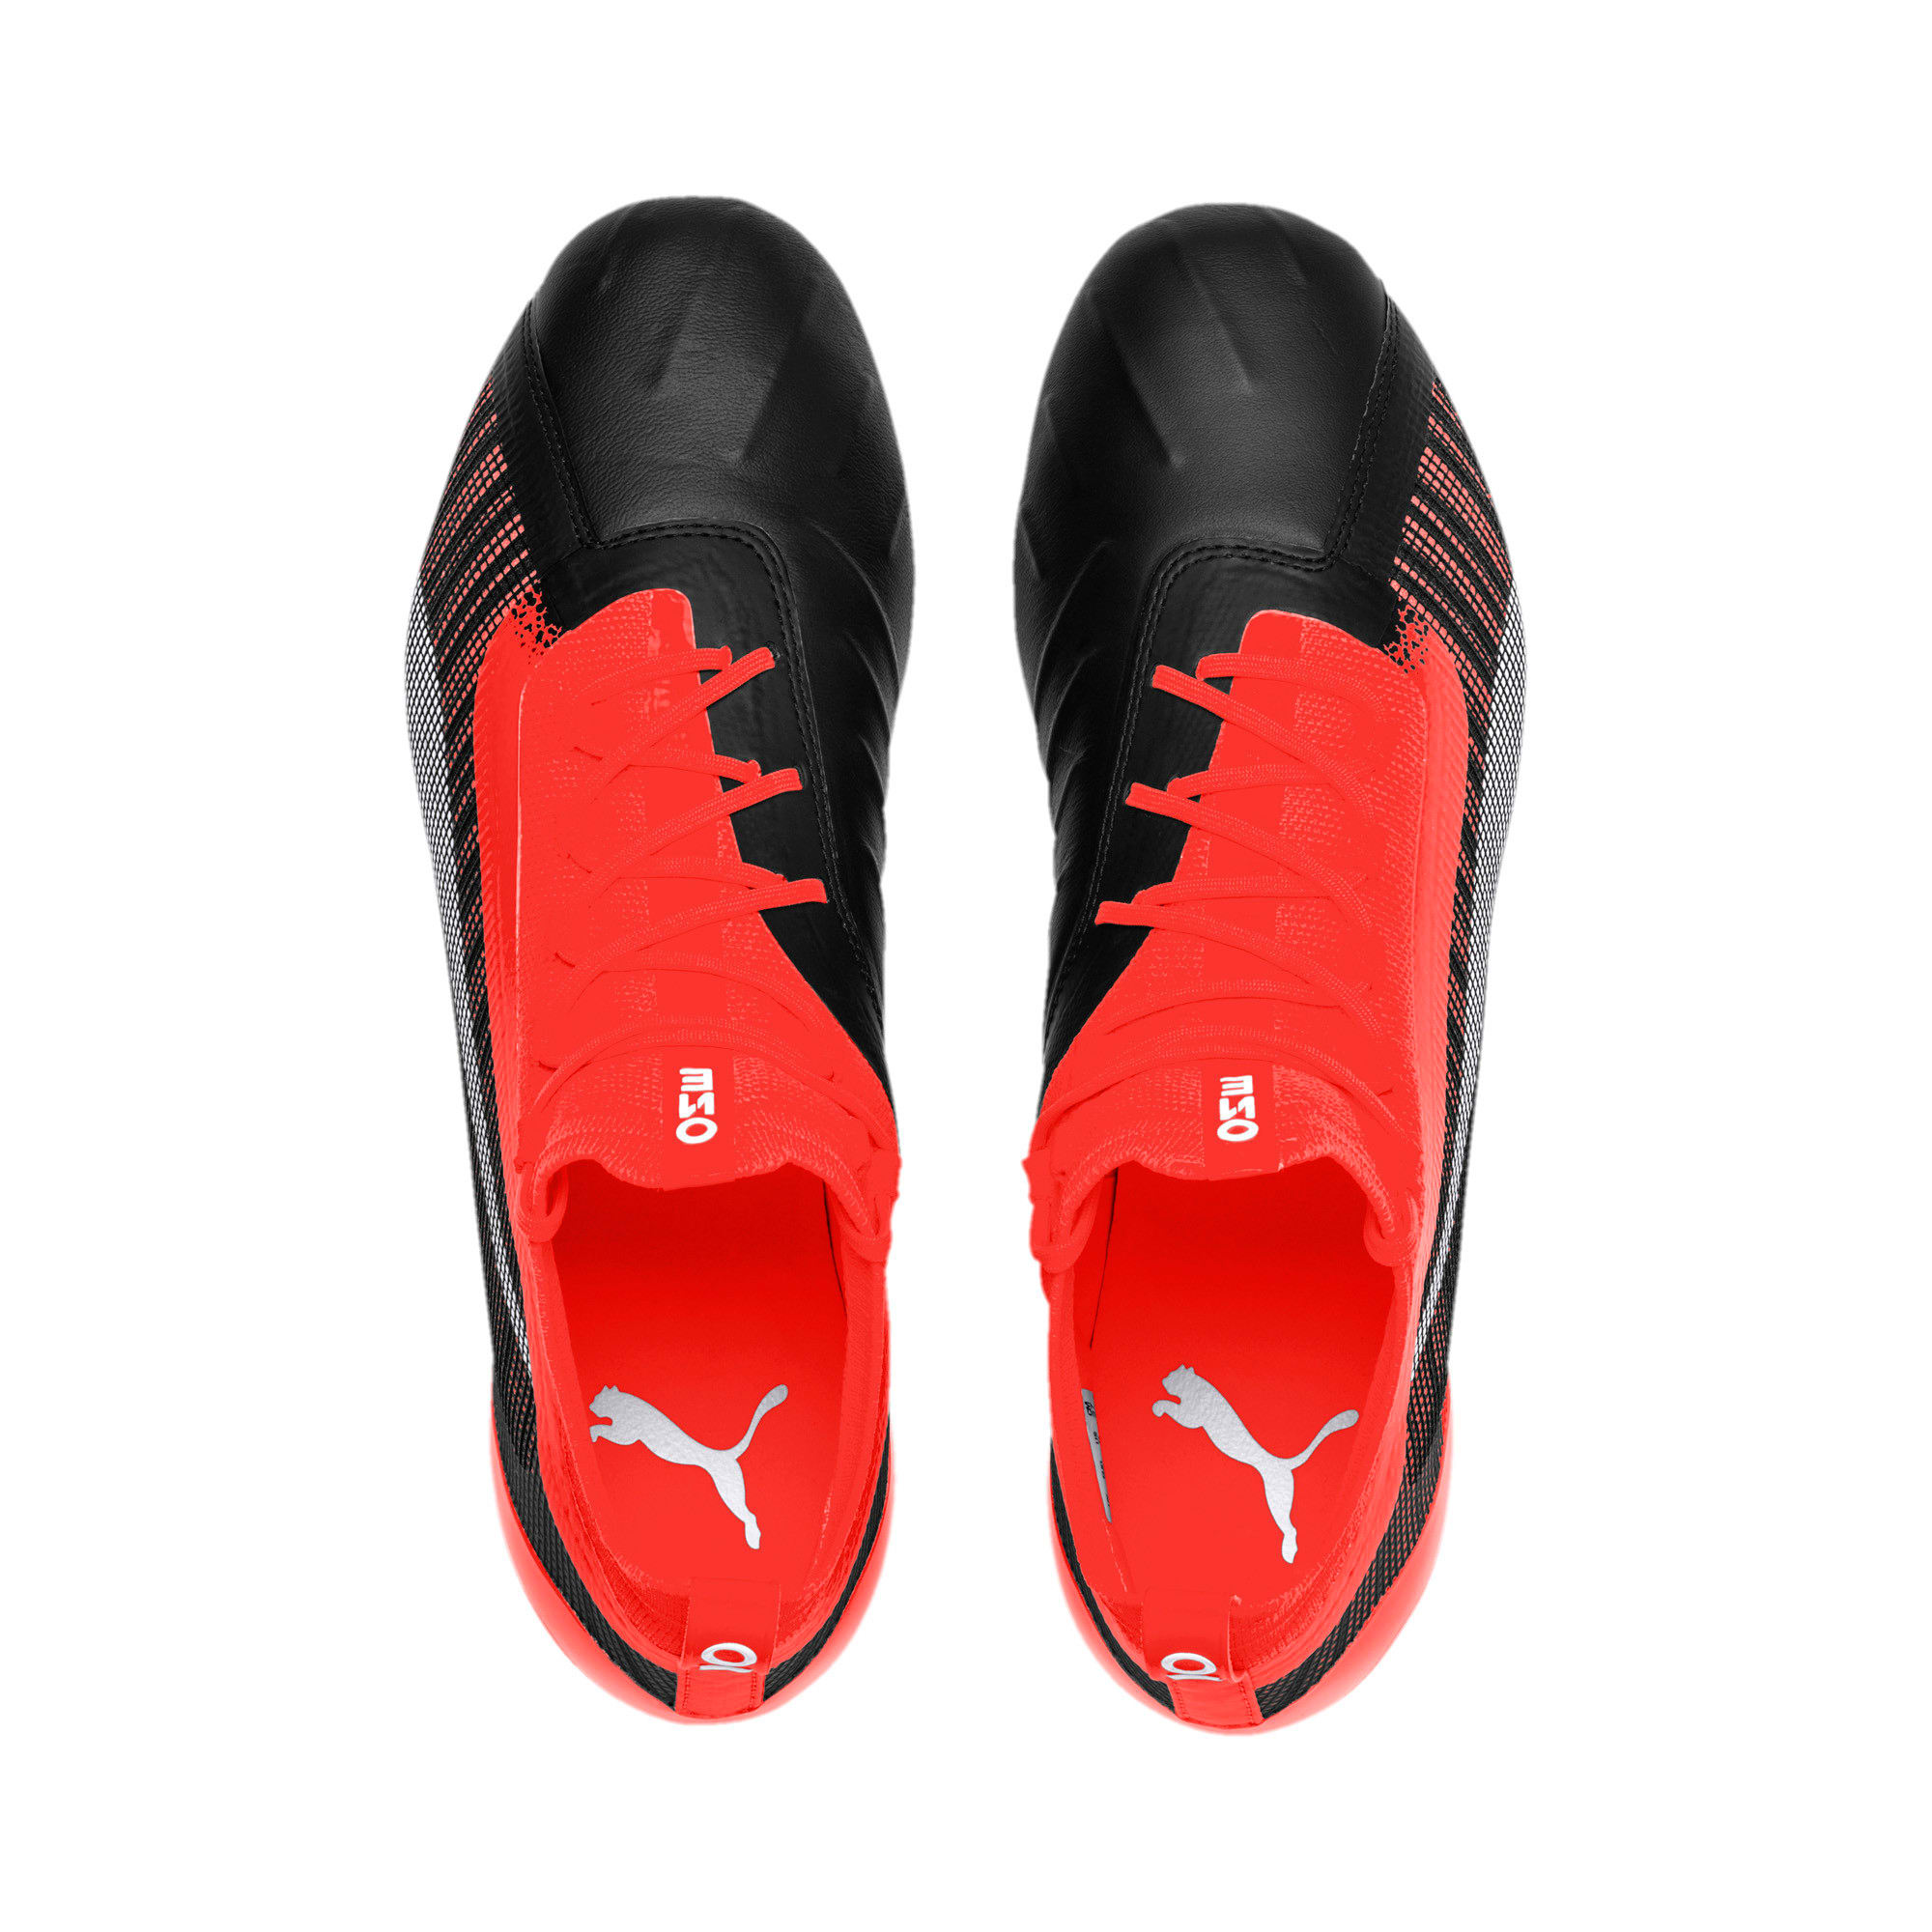 Thumbnail 8 of PUMA ONE 5.1 evoKNIT FG/AG Men's Football Boots, Black-Nrgy Red-Aged Silver, medium-IND